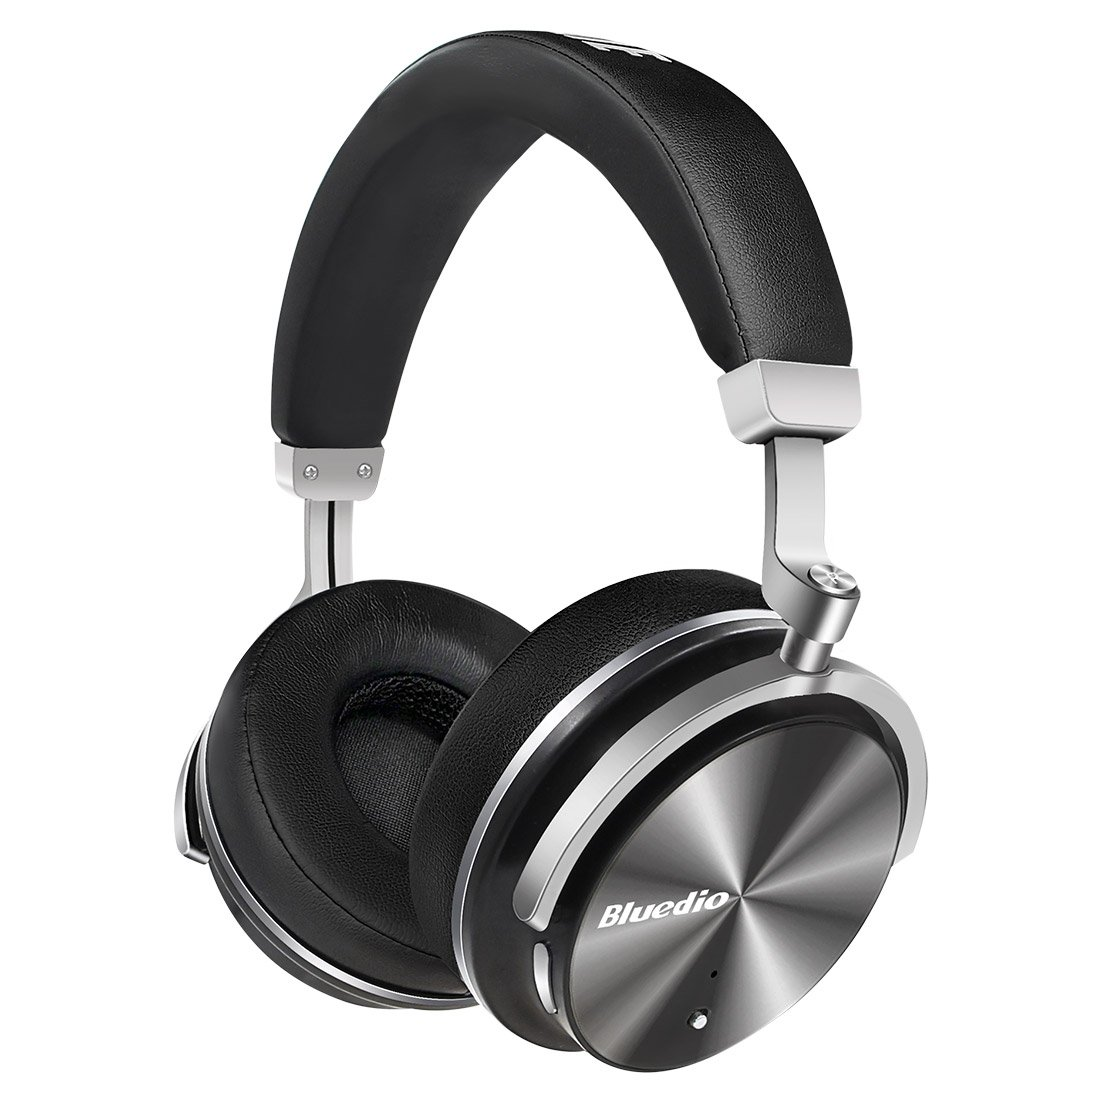 Bluedio T4 (Turbine) Active Noise Cancelling Over Ear Swiveling Wireless Bluetooth Headphones With Mic Father's Day Gift (Black) by Bluedio